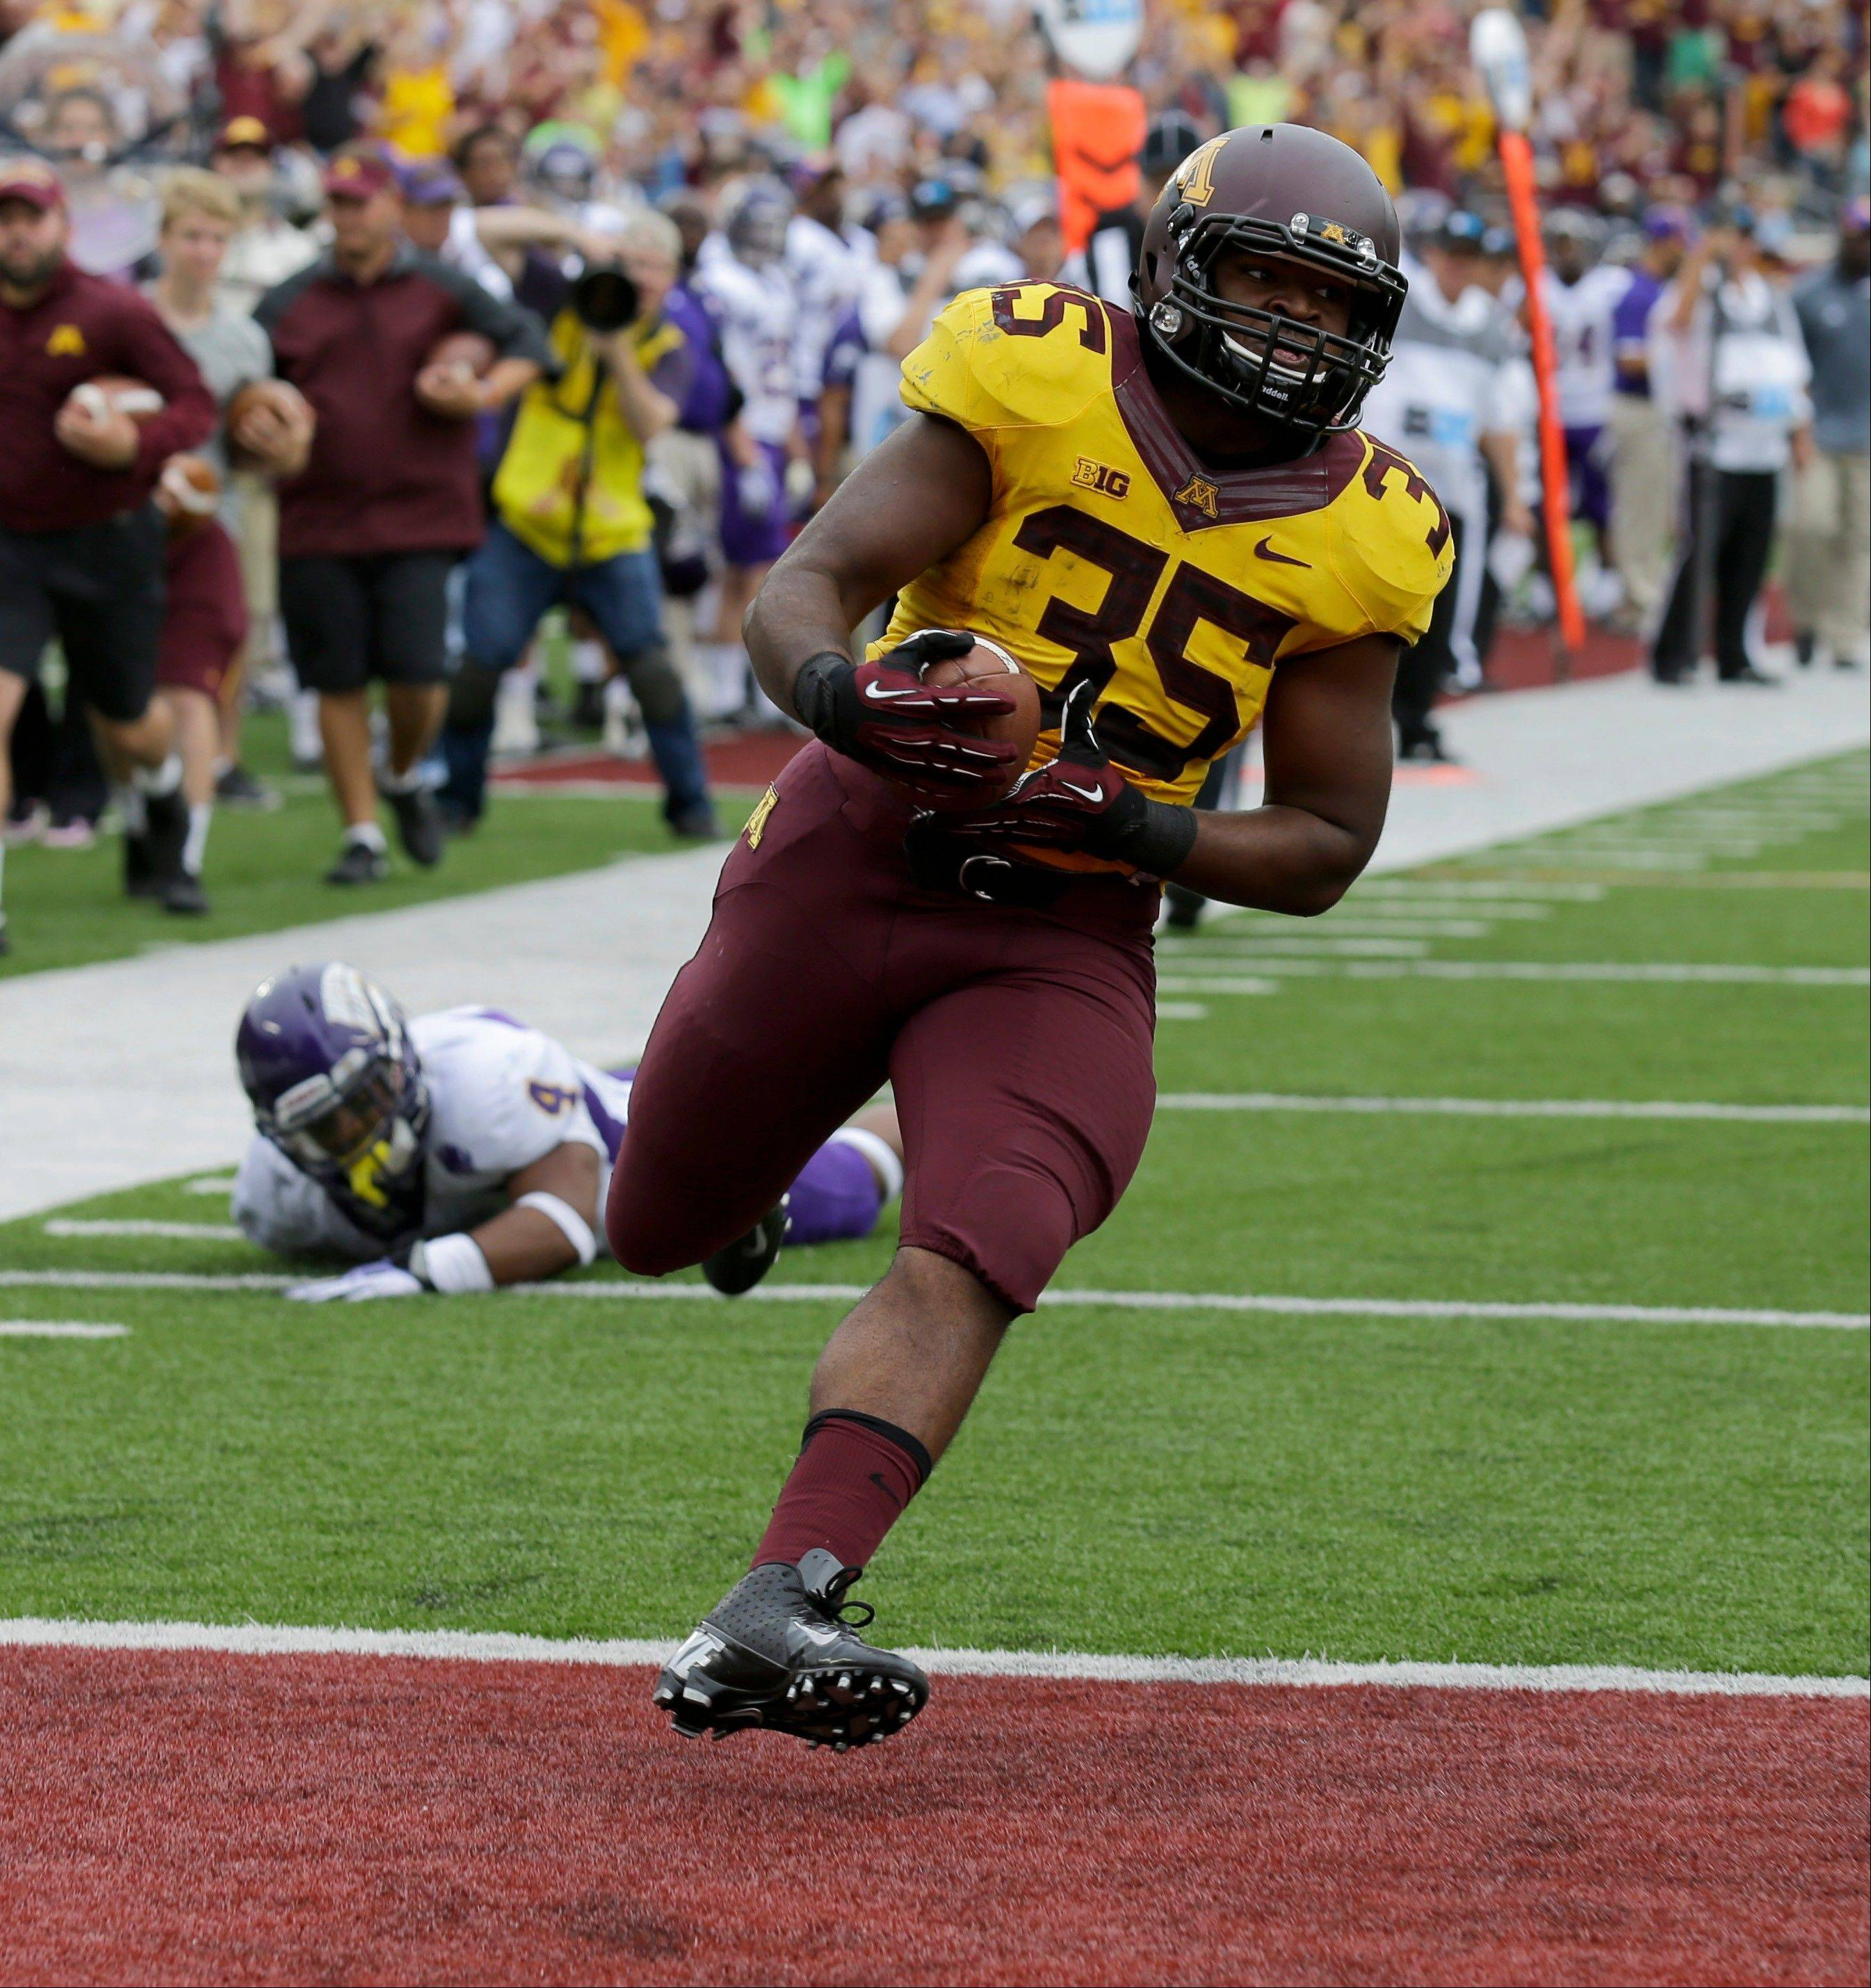 Minnesota's Rodrick Williams Jr. scores on a 37-yard touchdown run during the fourth quarter of last week's win over Western Illinois.